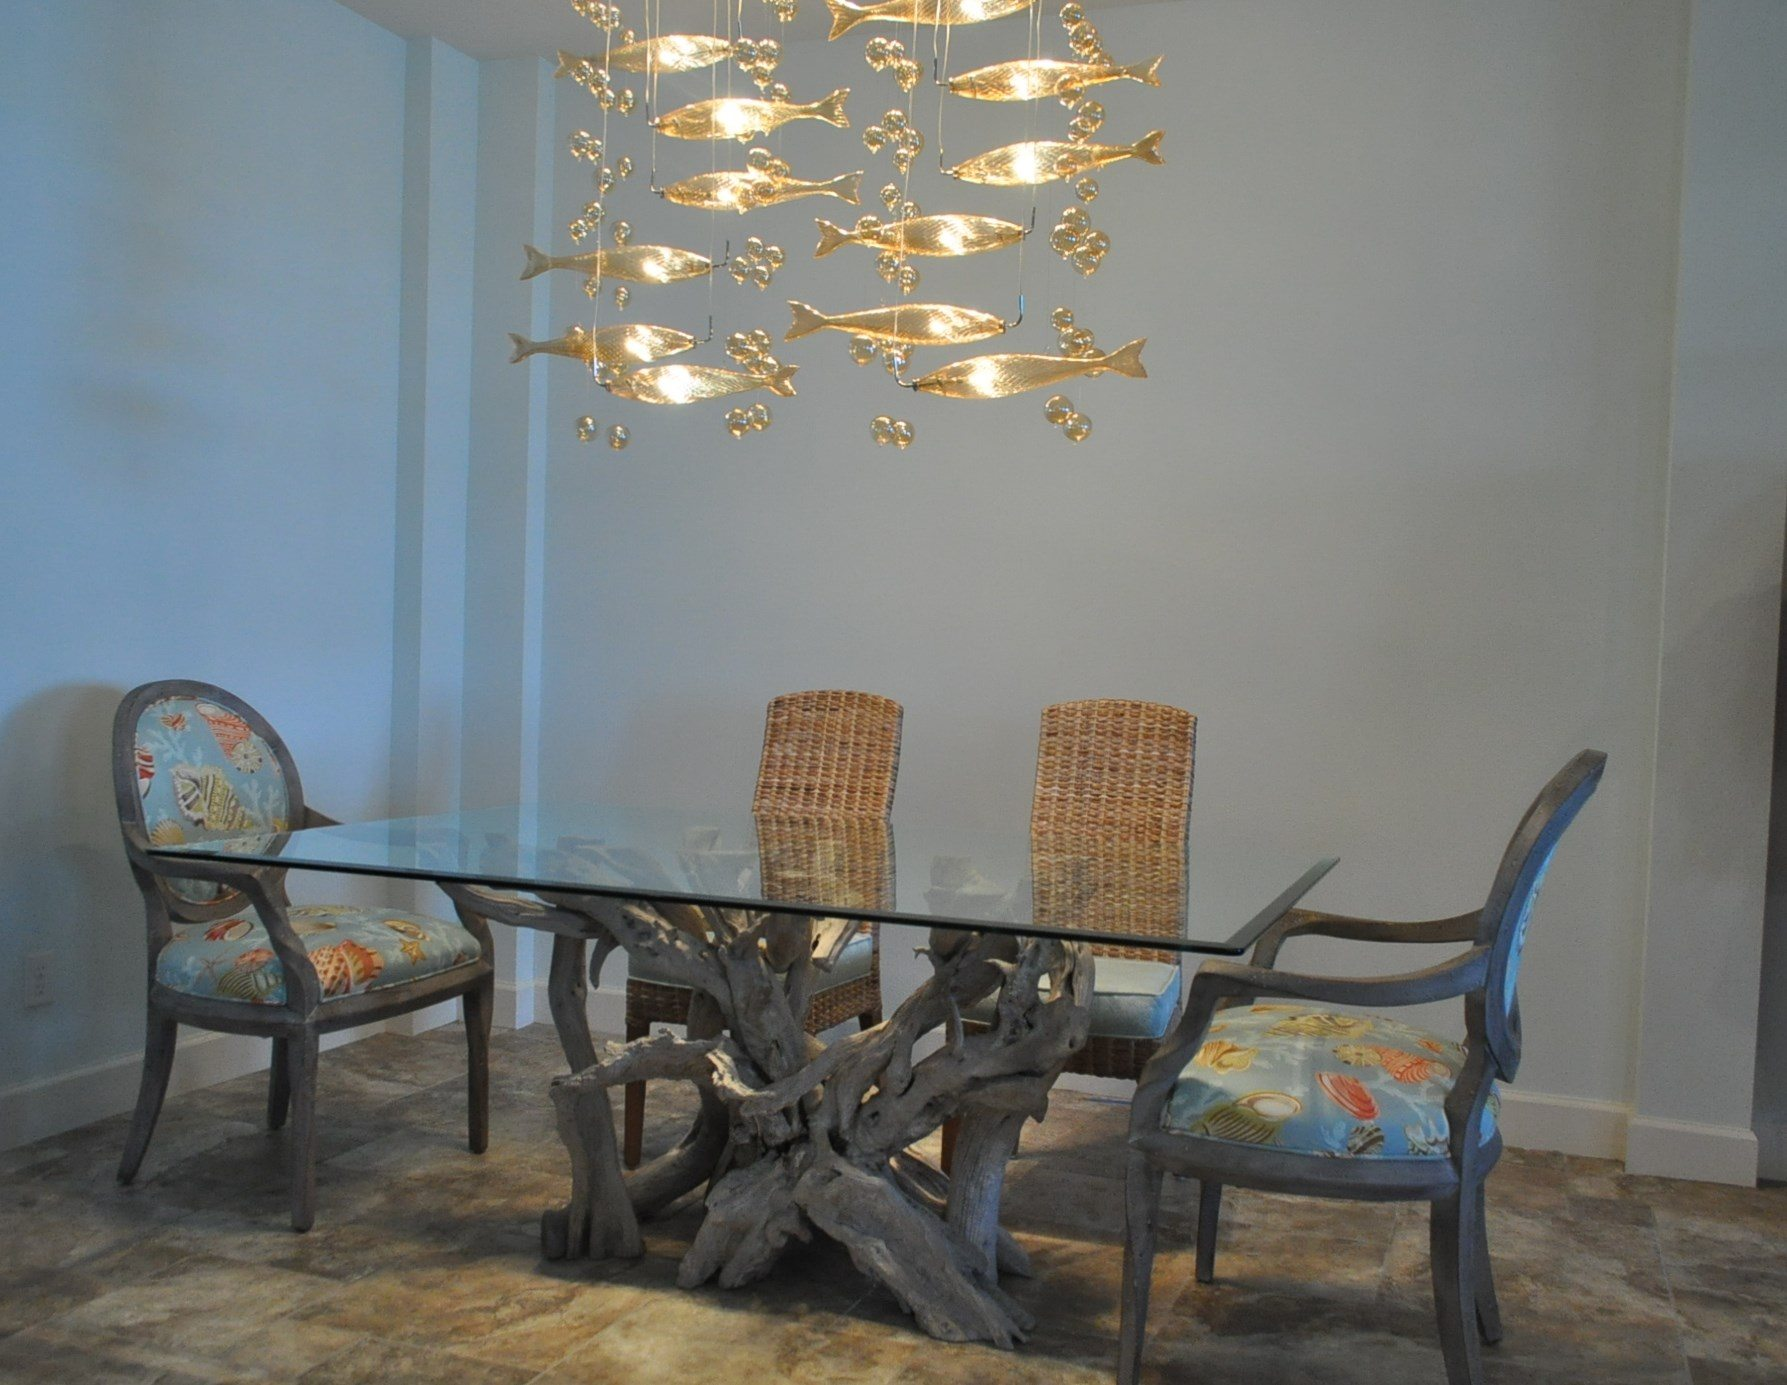 I Just Returned From Delivering A Driftwood Dining Table To Customers New Home In Lakewood Ranch Community Near Sarasota Fl Several Months Ago They